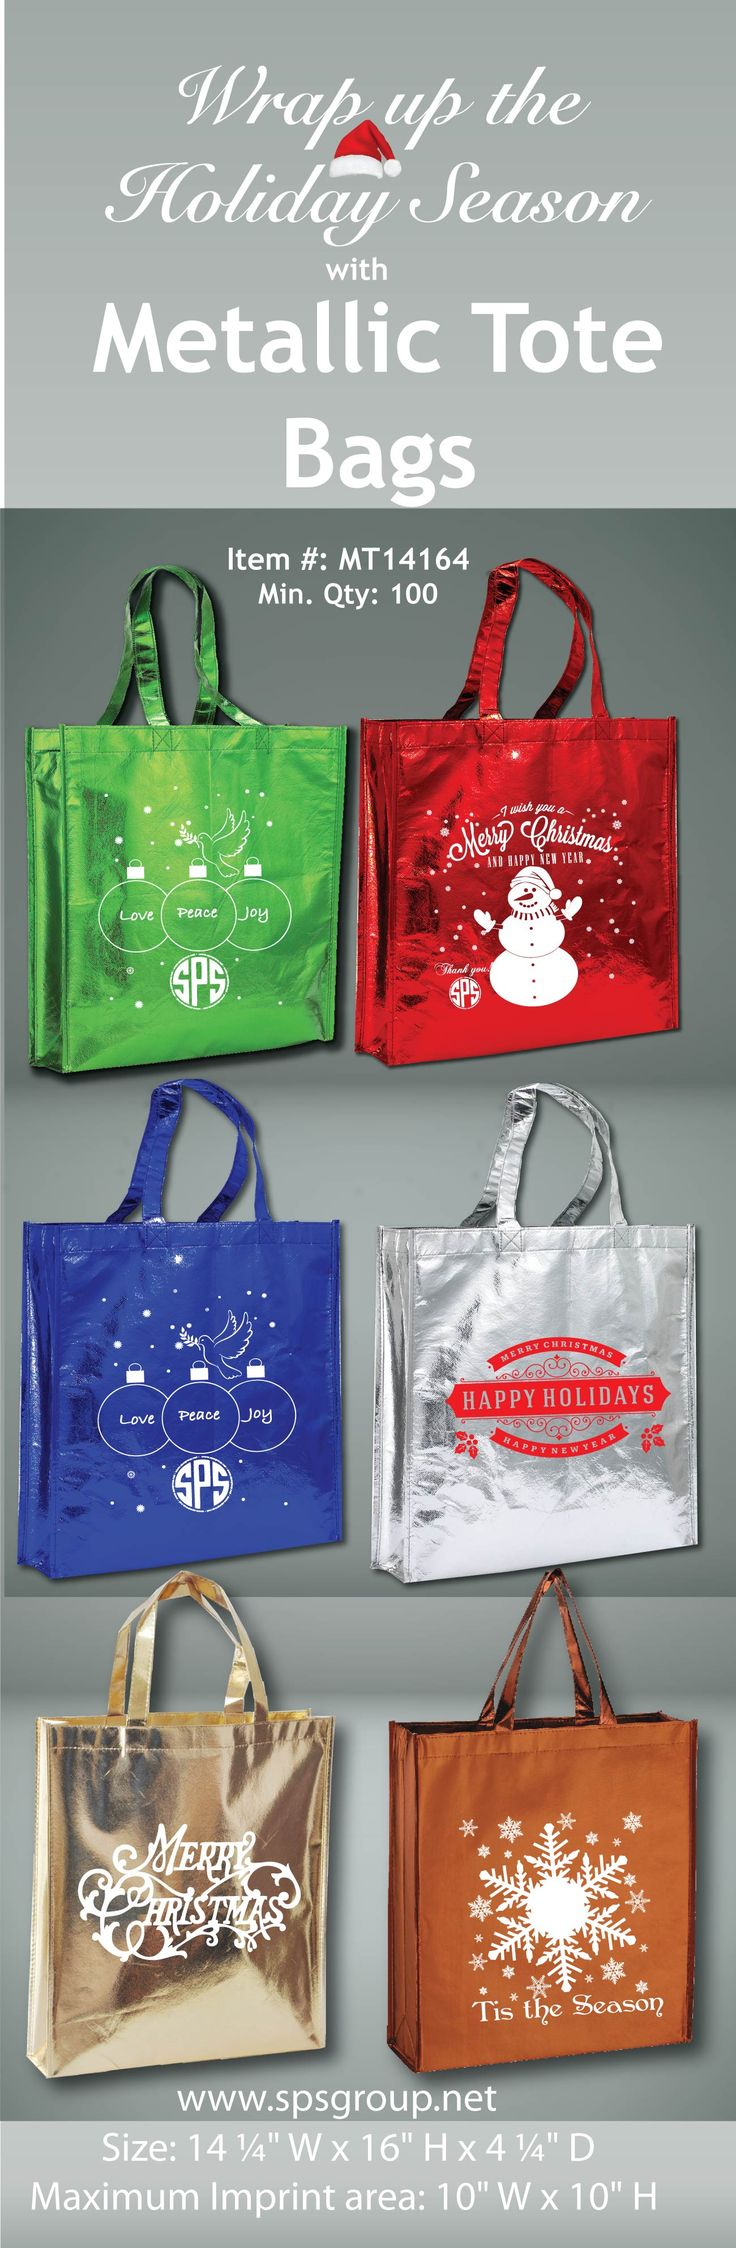 Wrap up the holidays with these wonderful custom printed Metallic Tote Bags! Min. Qty. 100.  Metallic Tote Bags available in 6 fun metallic colors. Stand out in a crowd with these shiny totes with large imprint area to display your brand or message. Great for events, advertising, brand marketing, gifts, promos, trade shows, giveaways, shopping, markets, book stores and so much more. Reusable and recyclable.